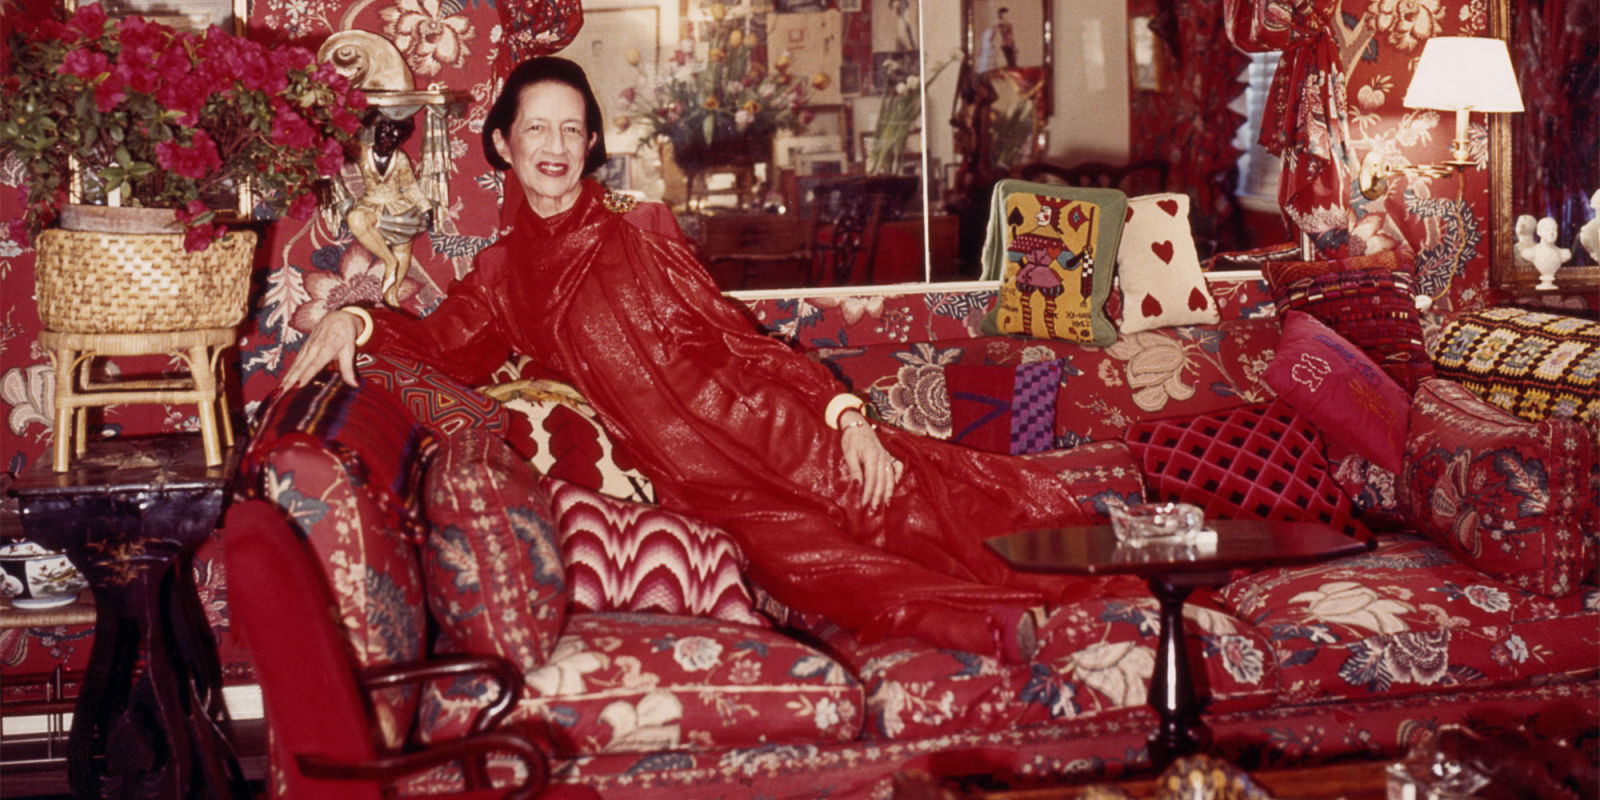 50 fashion quotes Impulsemag diane vreeland